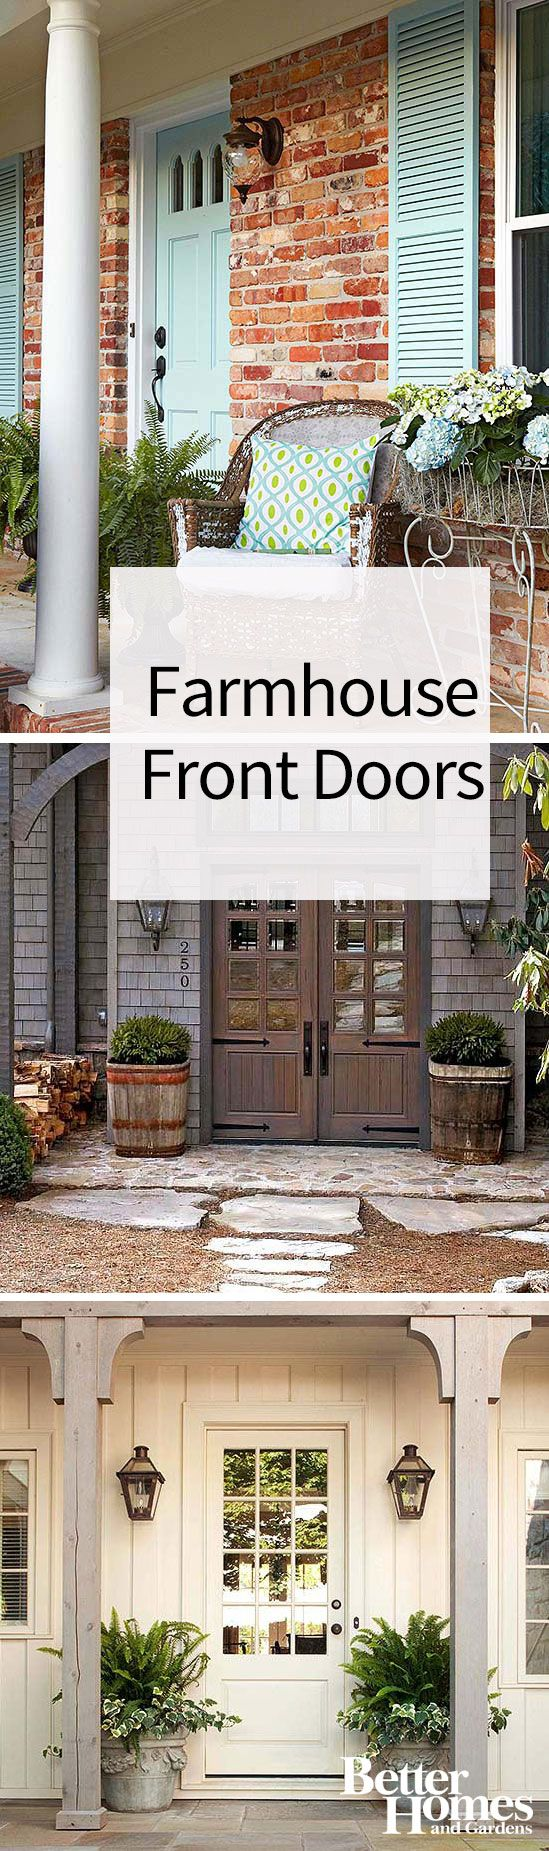 If you love the country-style trend, you'll get a ton of inspiration for your home's exterior from these farmhouse front doors. Use these ideas to dream up the perfect door to boost your house's rustic exterior with a modern door that looks old.